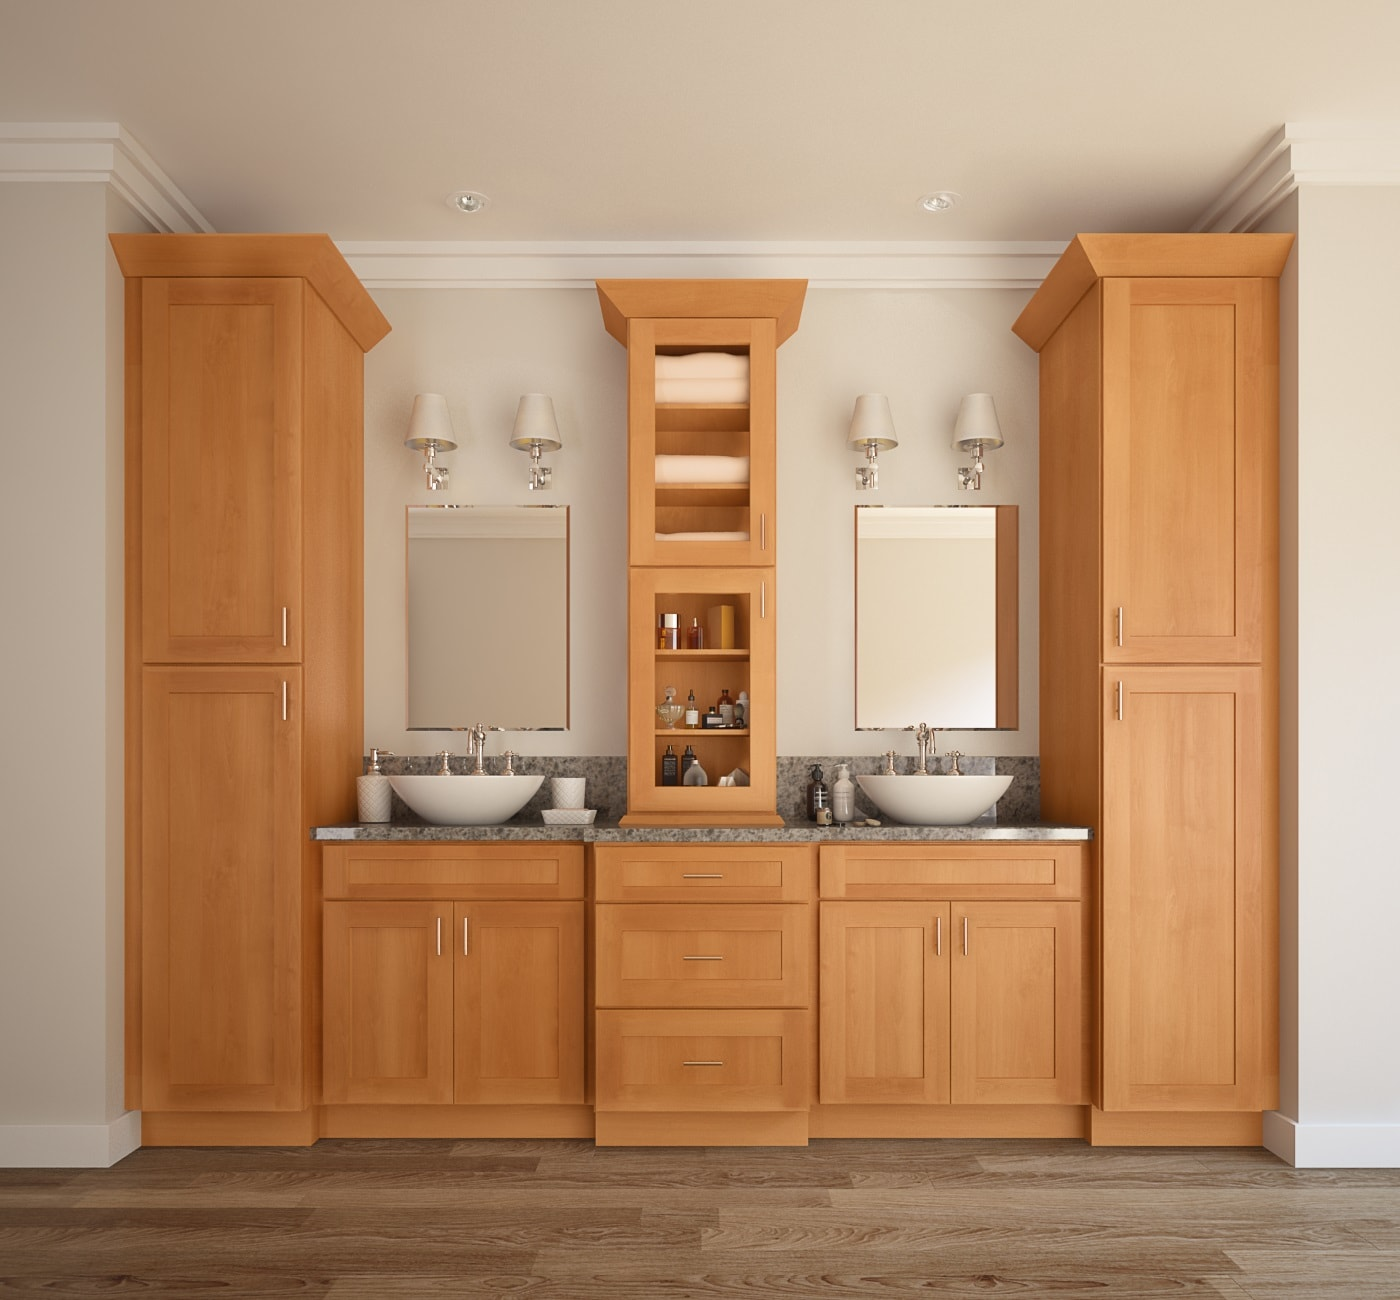 unfinished kitchen base cabinets single handle faucet shaker honey pre-assembled bathroom vanities - the rta store